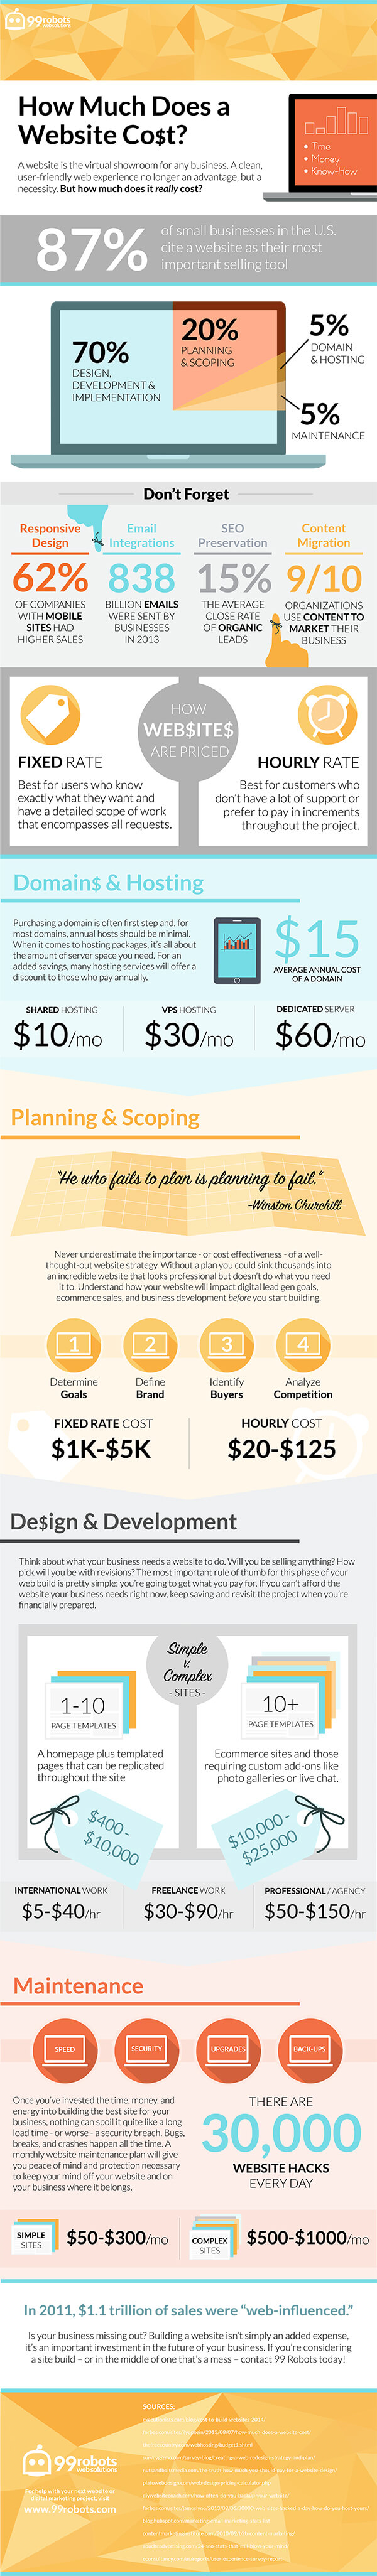 how much does a website cost infographic